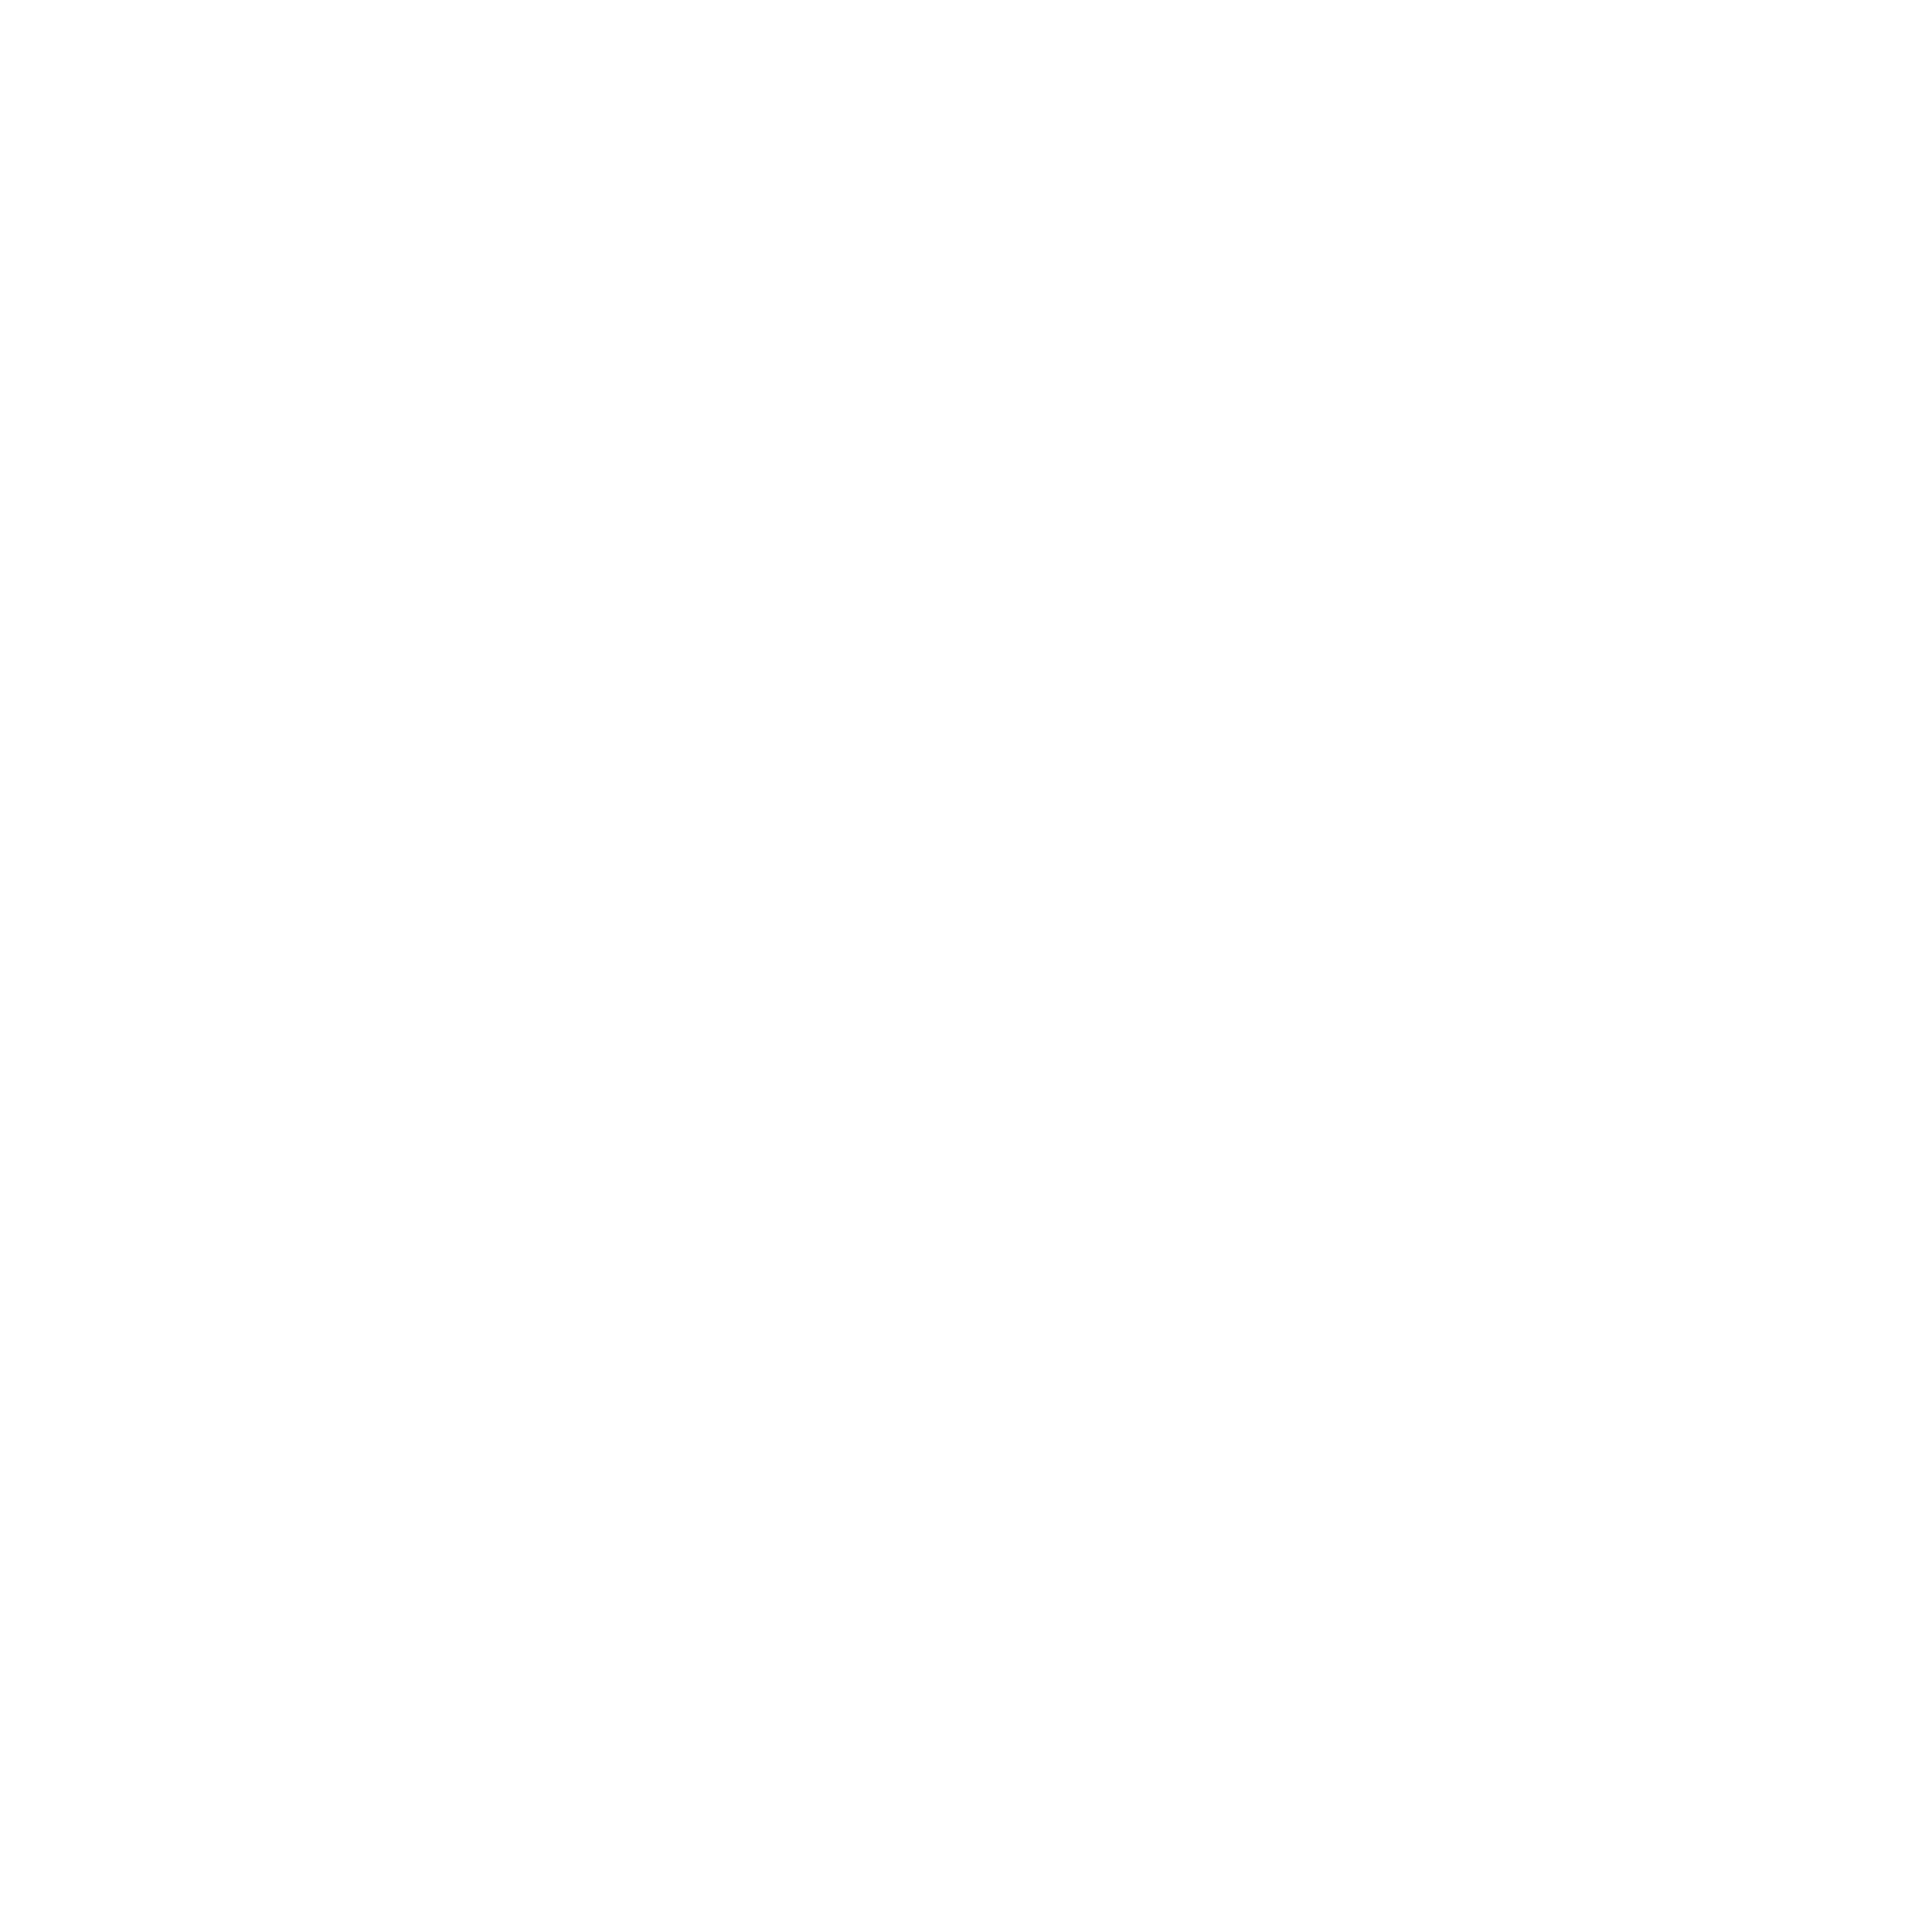 Jersey Washington Wizards Logo Black And White.